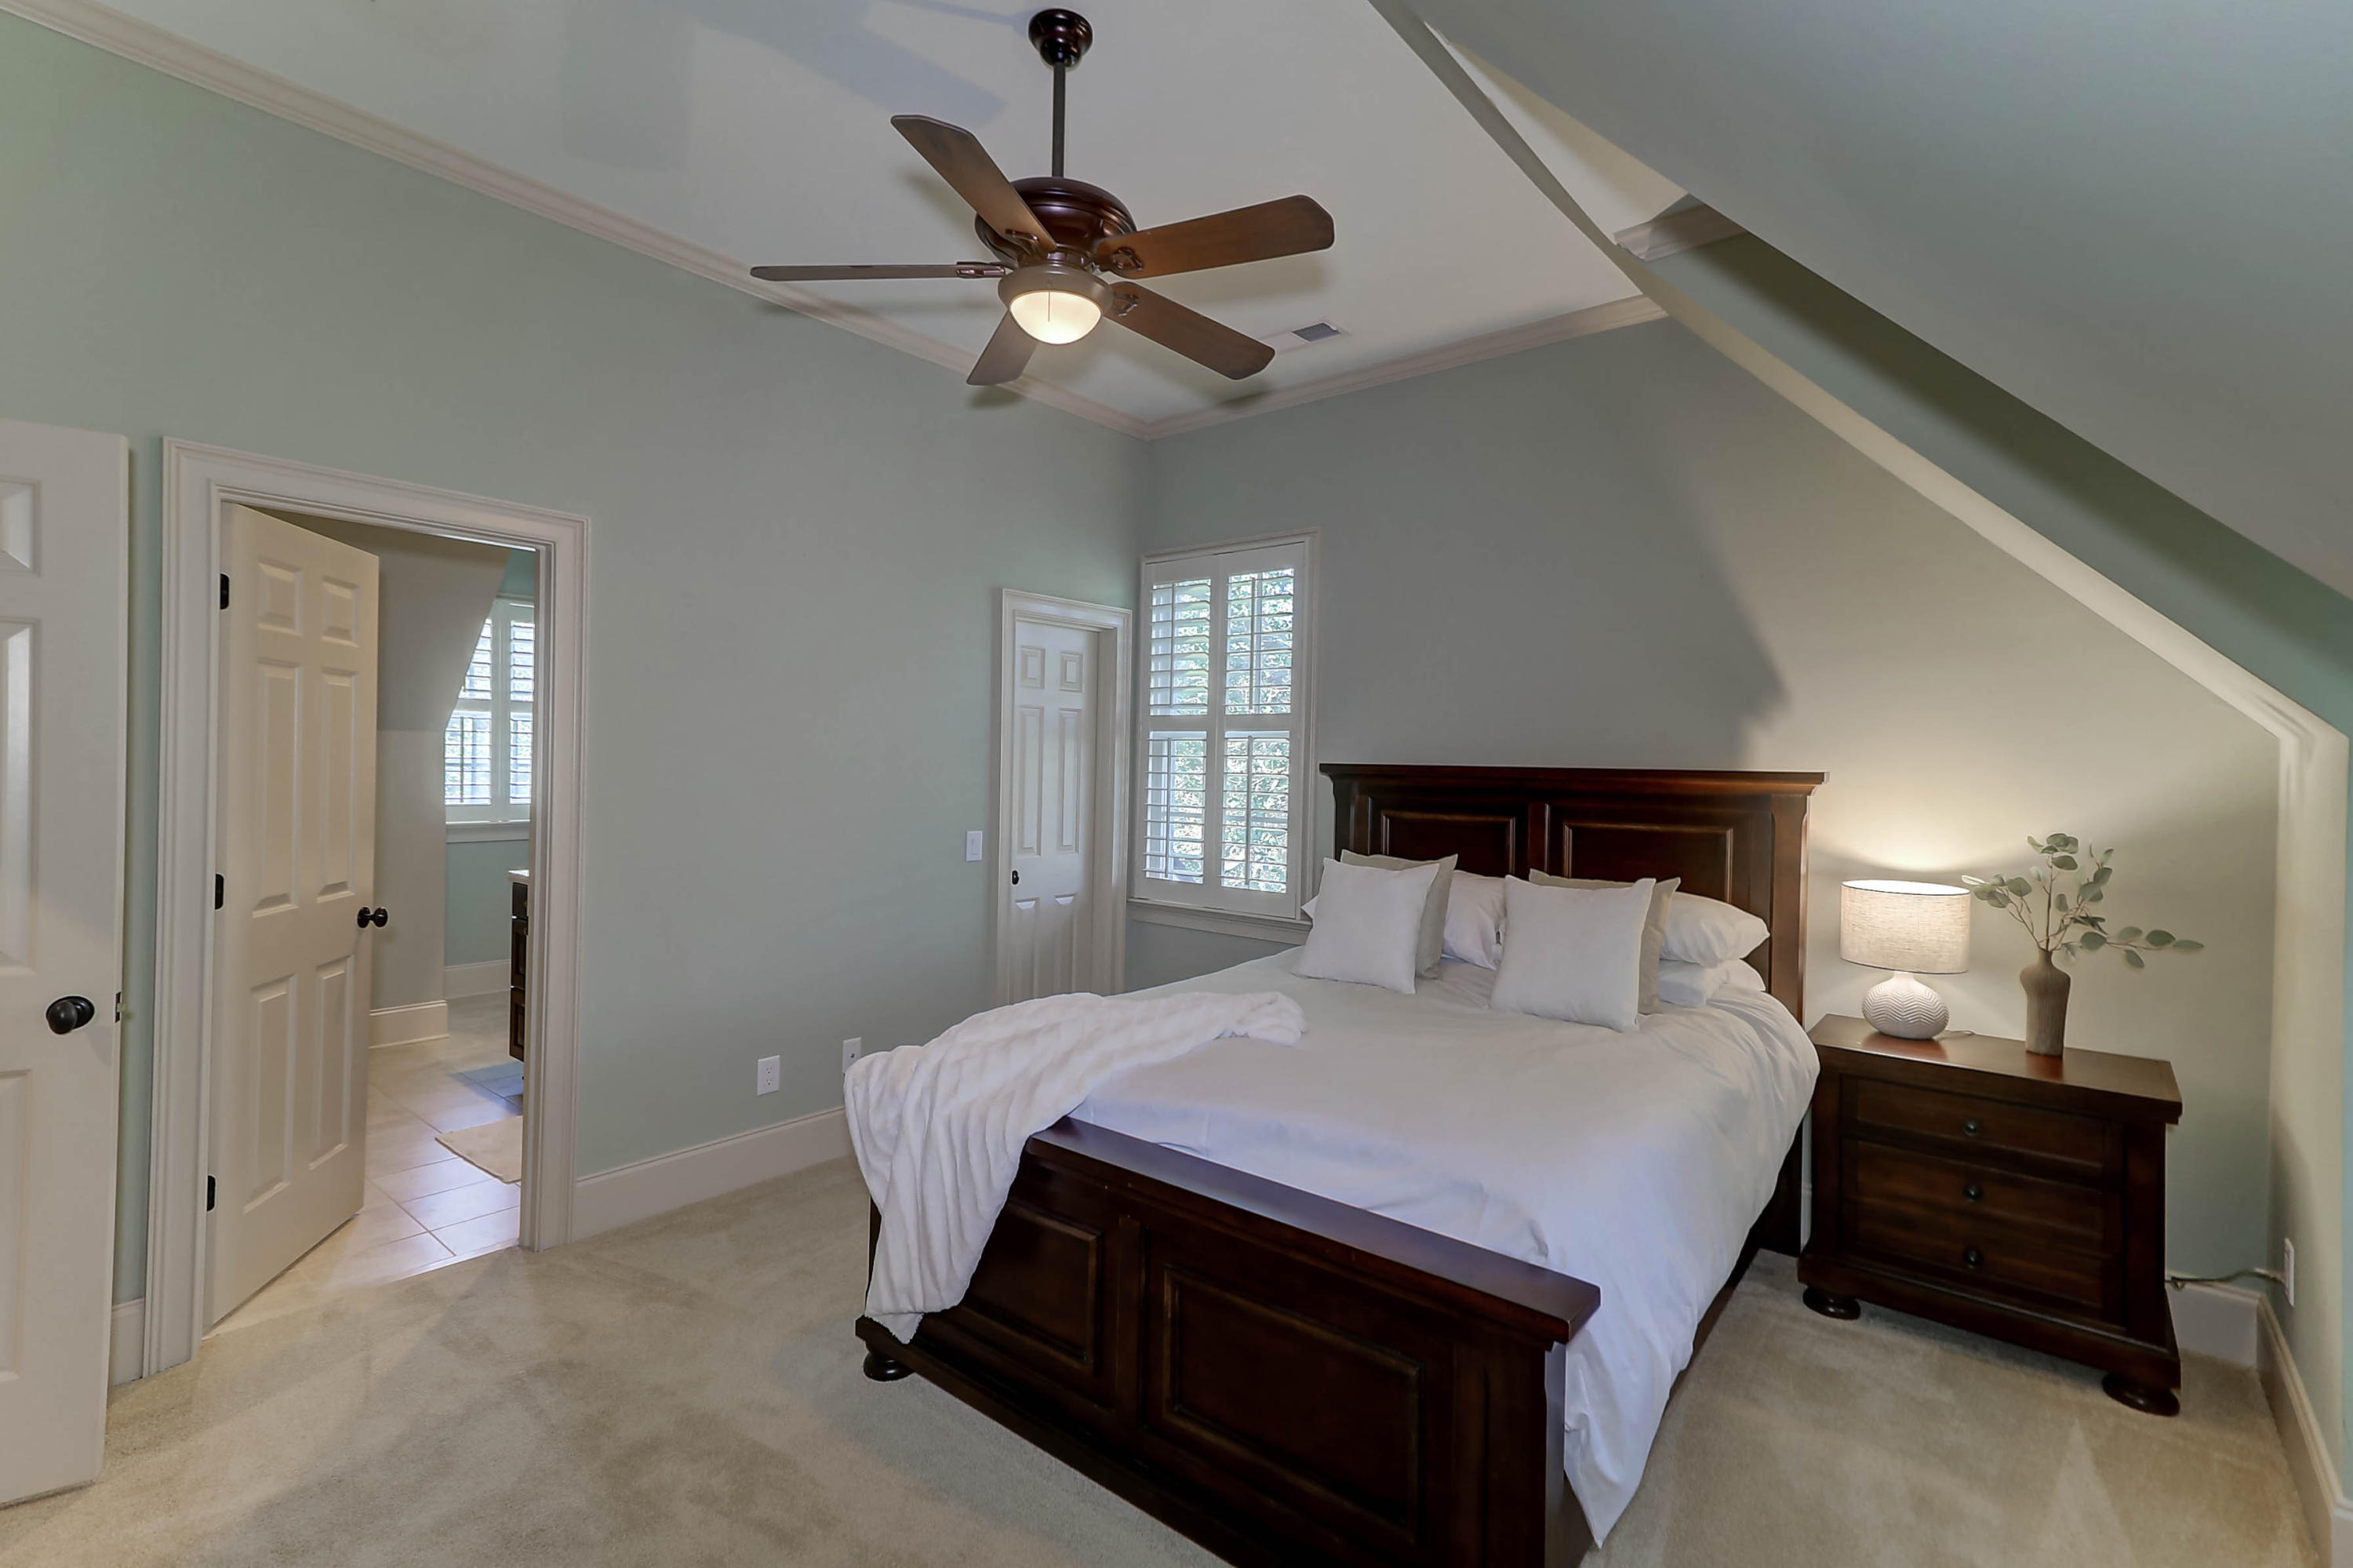 River Reach at Remley'S Point Homes For Sale - 136 Wando Reach, Mount Pleasant, SC - 24